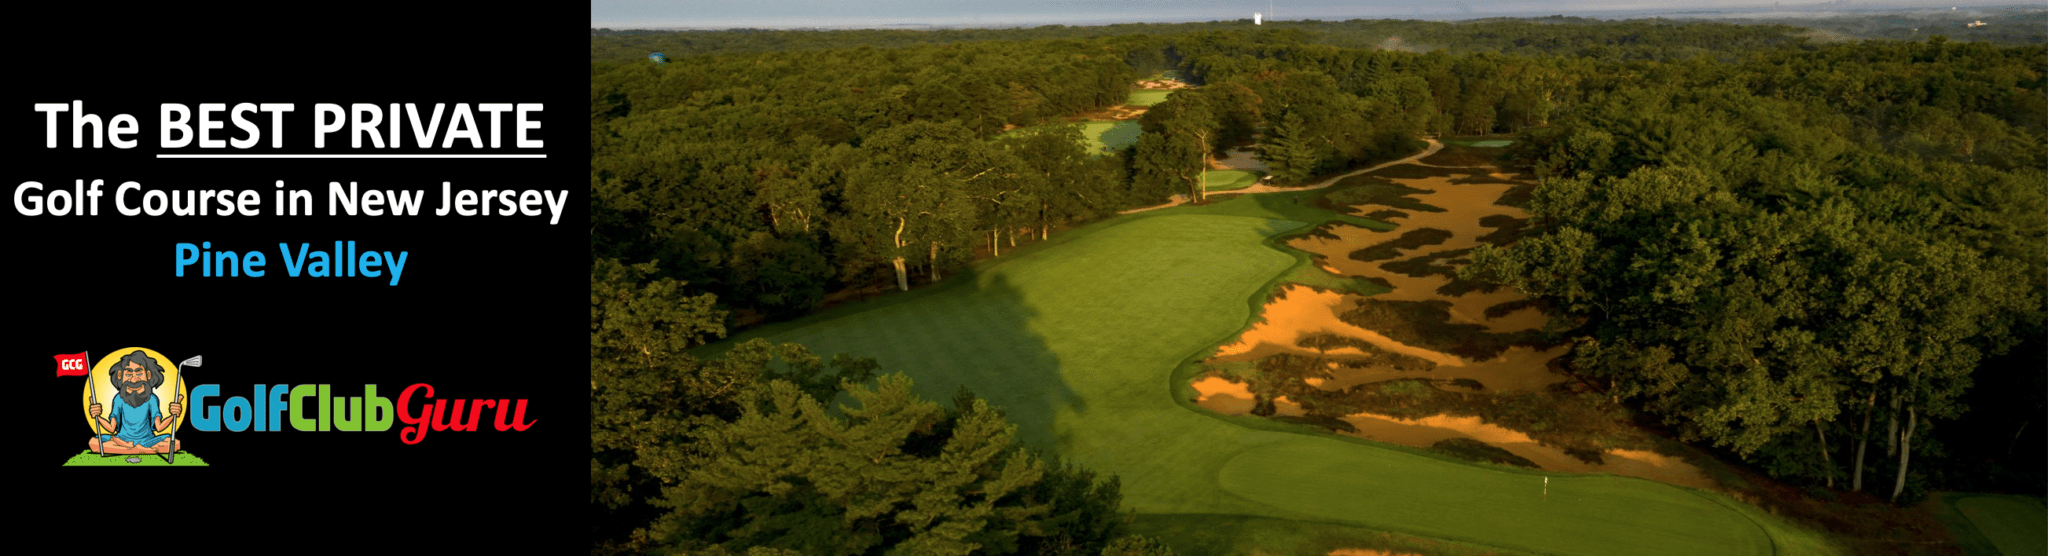 the best private golf club in new jersey pine valley ...